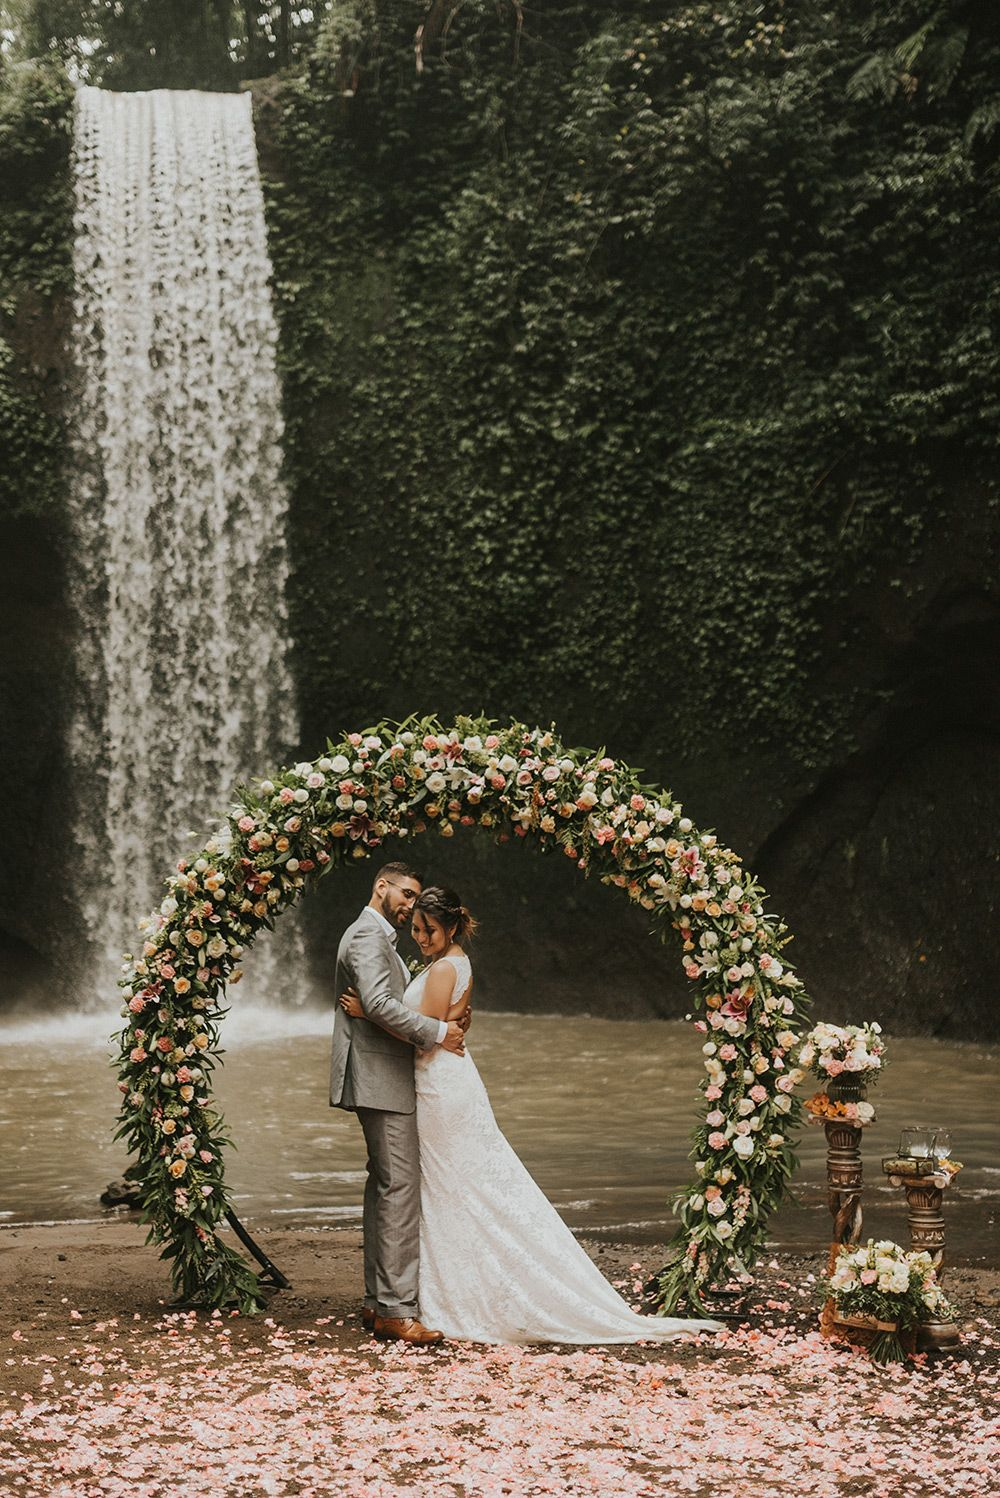 6 amazing Bali elopements and tips on planning your own